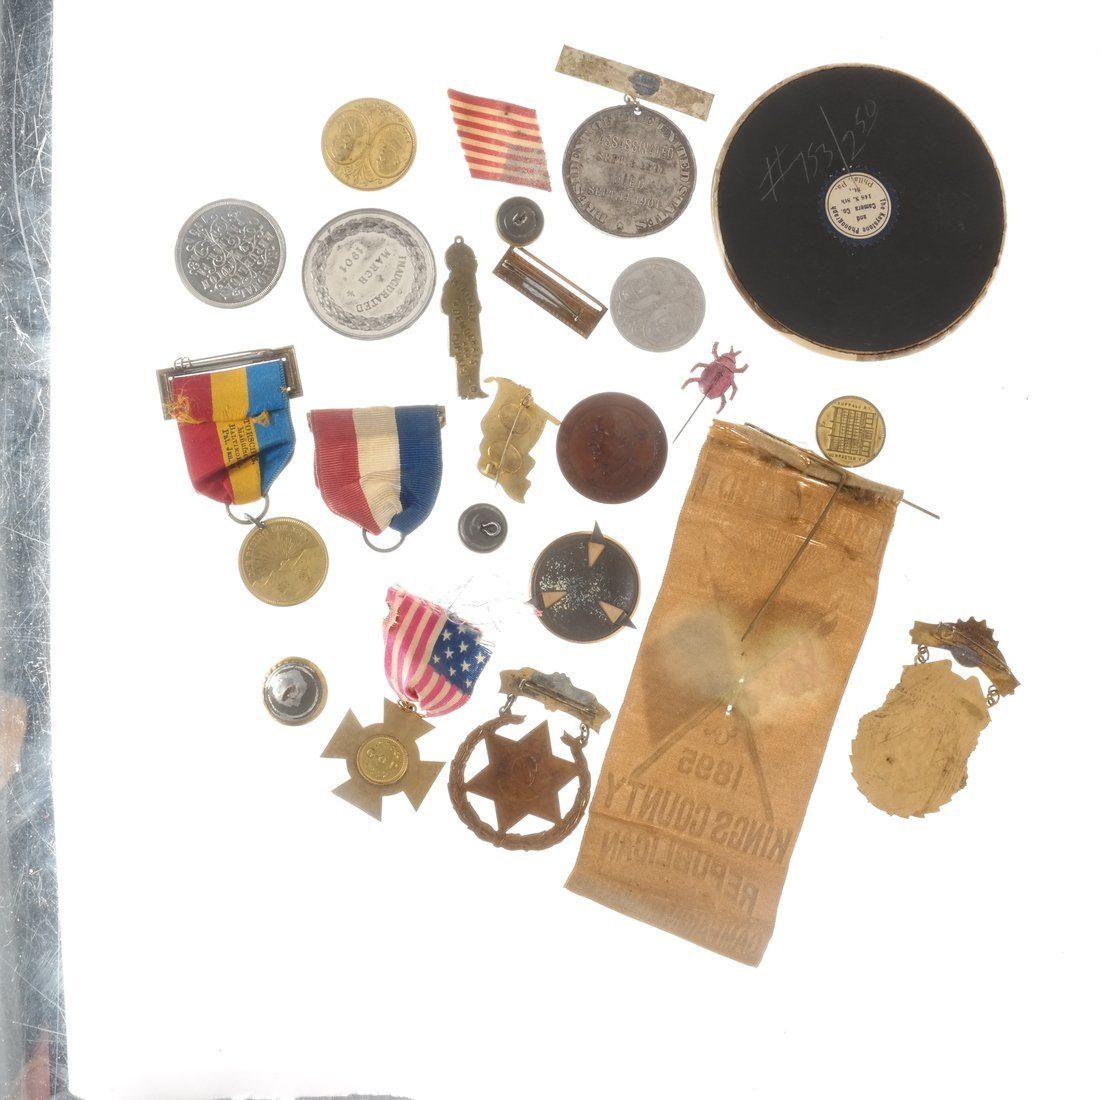 William McKinley - Campaign and Memorial Items - 2